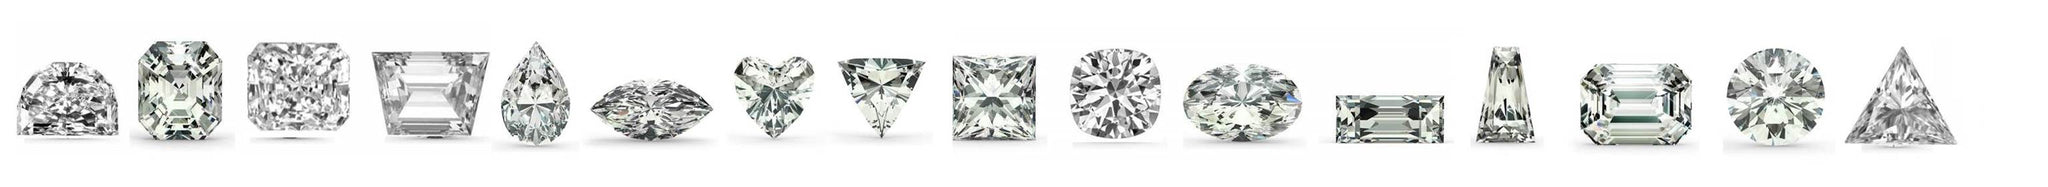 wholesale loose cubic zirconia stones